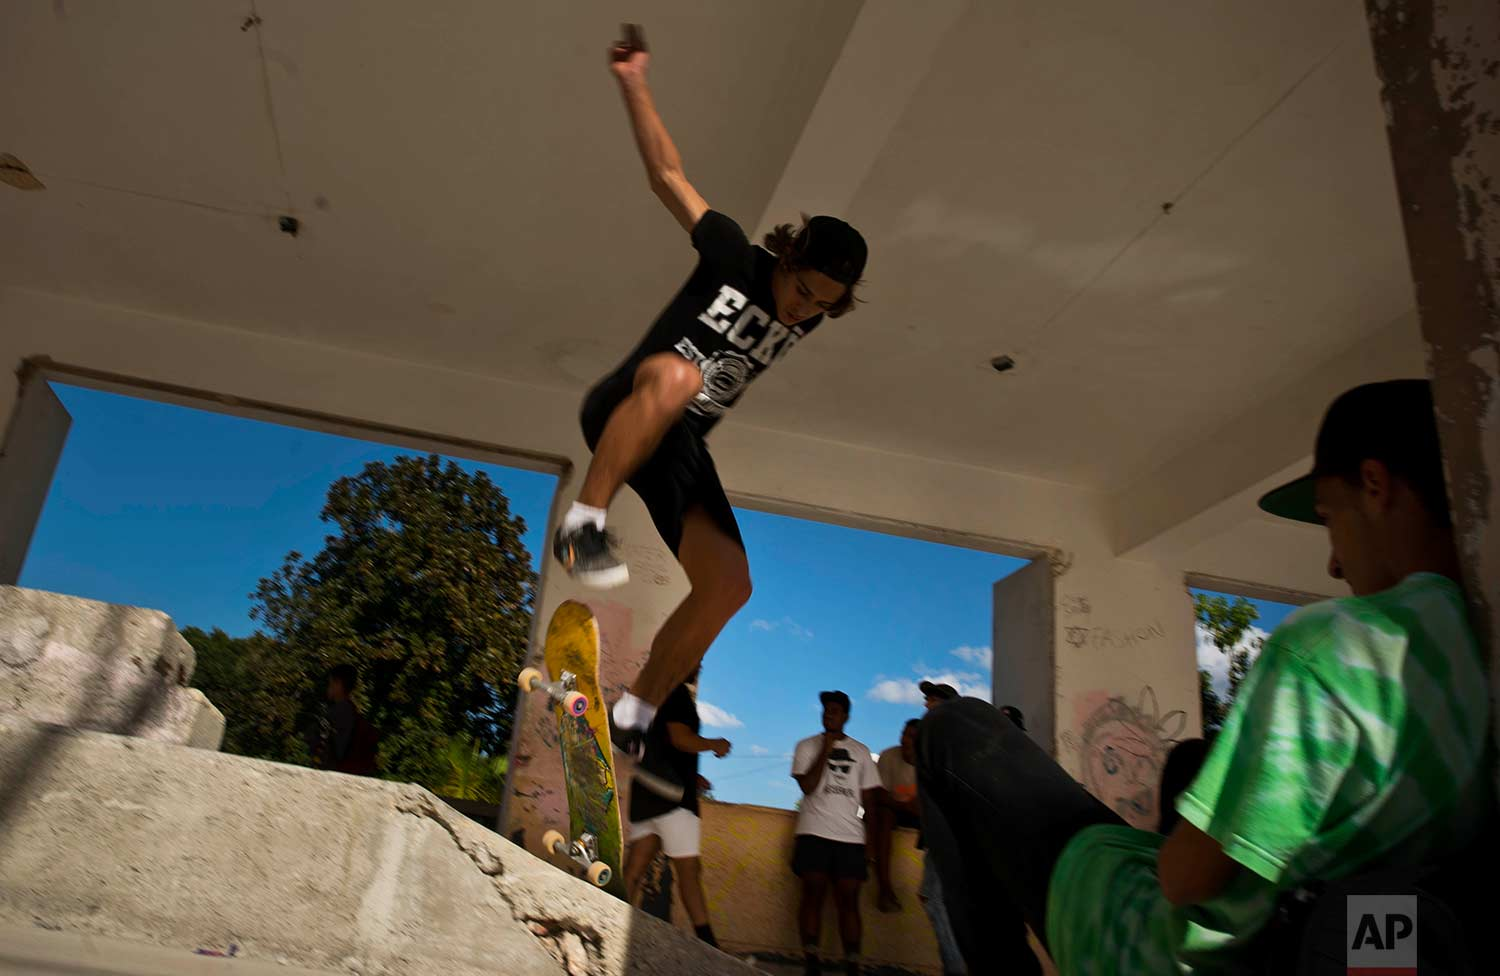 In this Jan. 11, 2018 photo, a skater jumps during the inauguration of a new recreational space for skateboarders, created in an abandoned gym at the Educational complex Ciudad Libertad, a former military barracks that the late Fidel Castro turned into a school complex after the revolution in Havana, Cuba. (AP Photo/Ramon Espinosa)